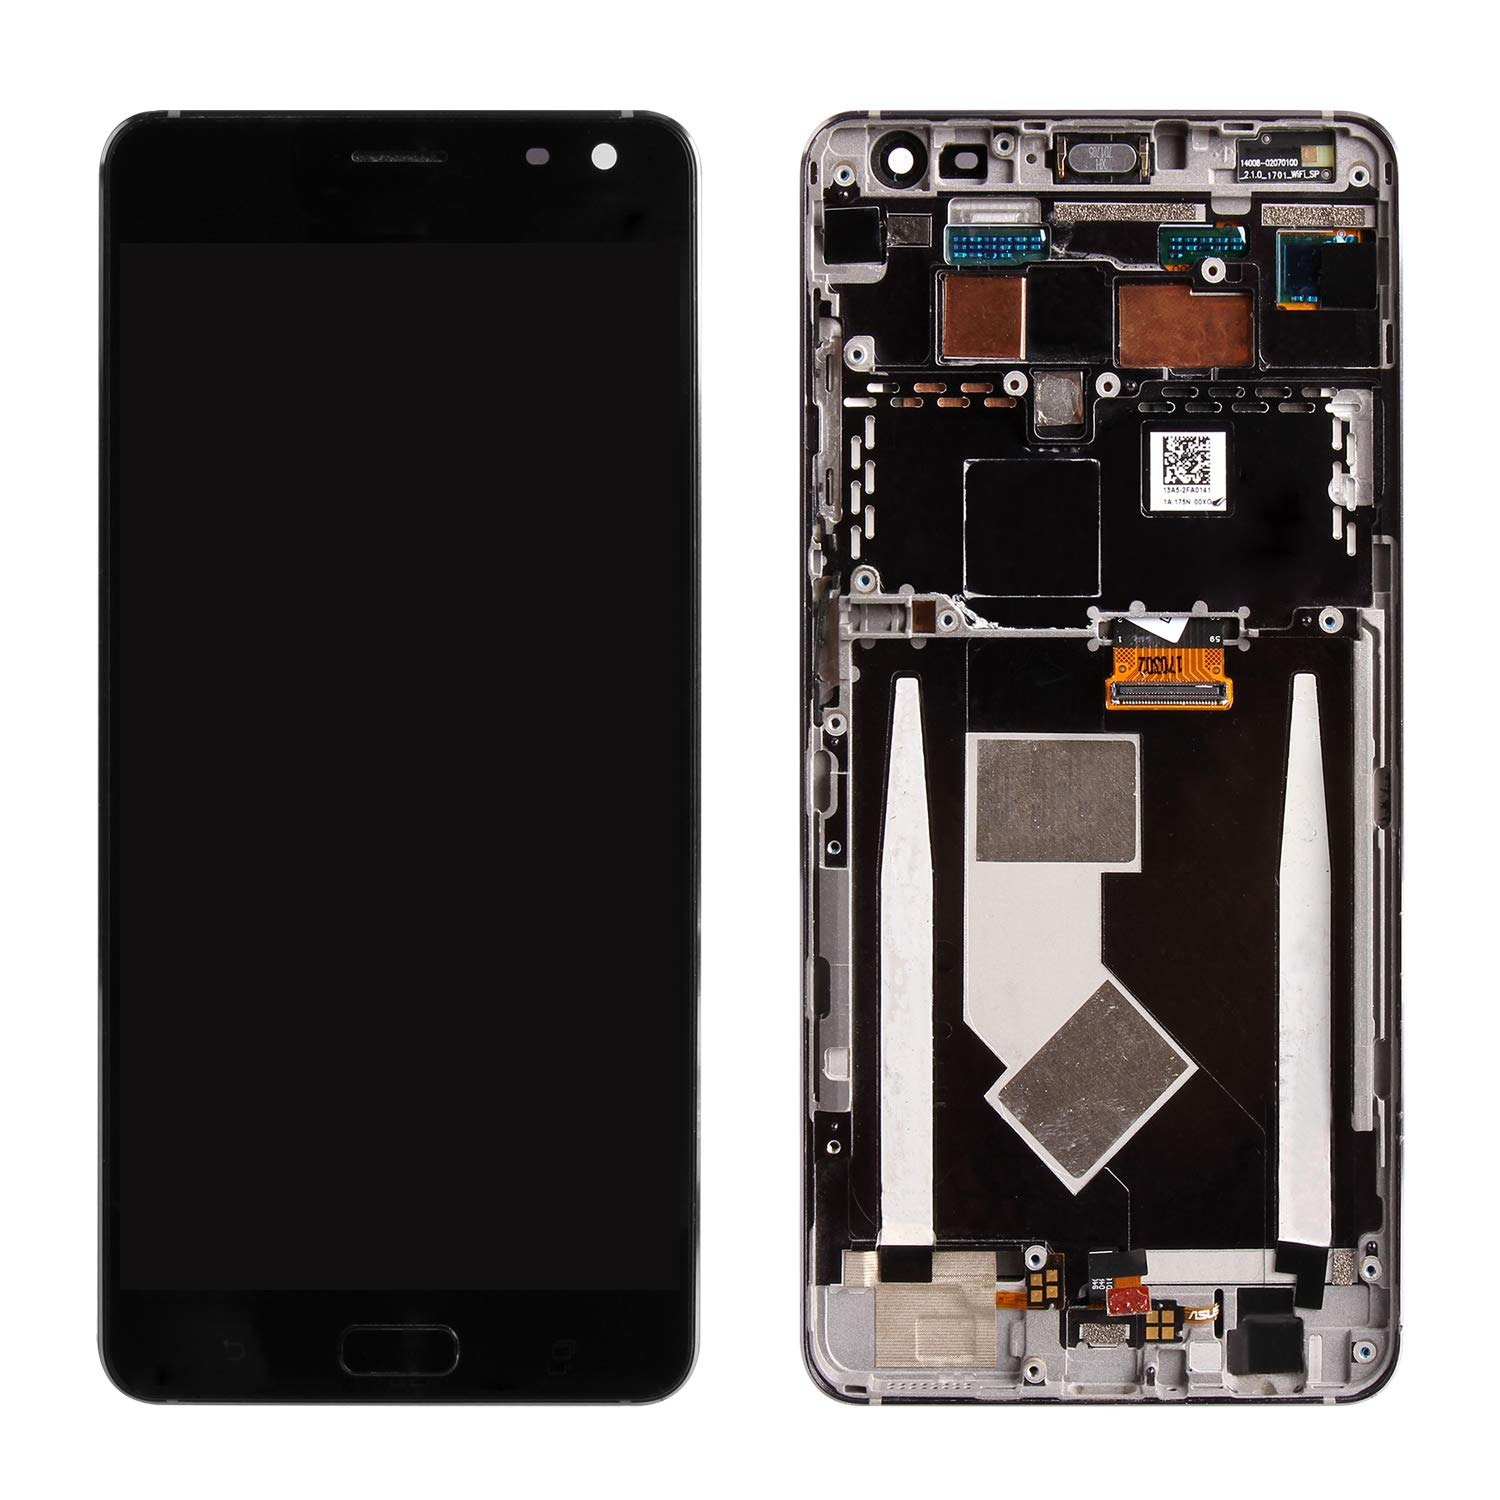 Screen Replacement for ASUS ZenFone AR ZS571KL, Compatible with A002A 5.7'' LCD Display Touch Screen Replacement Digitizer Assembly with Repair Tools Kits (Black with Frame) by Puzzle